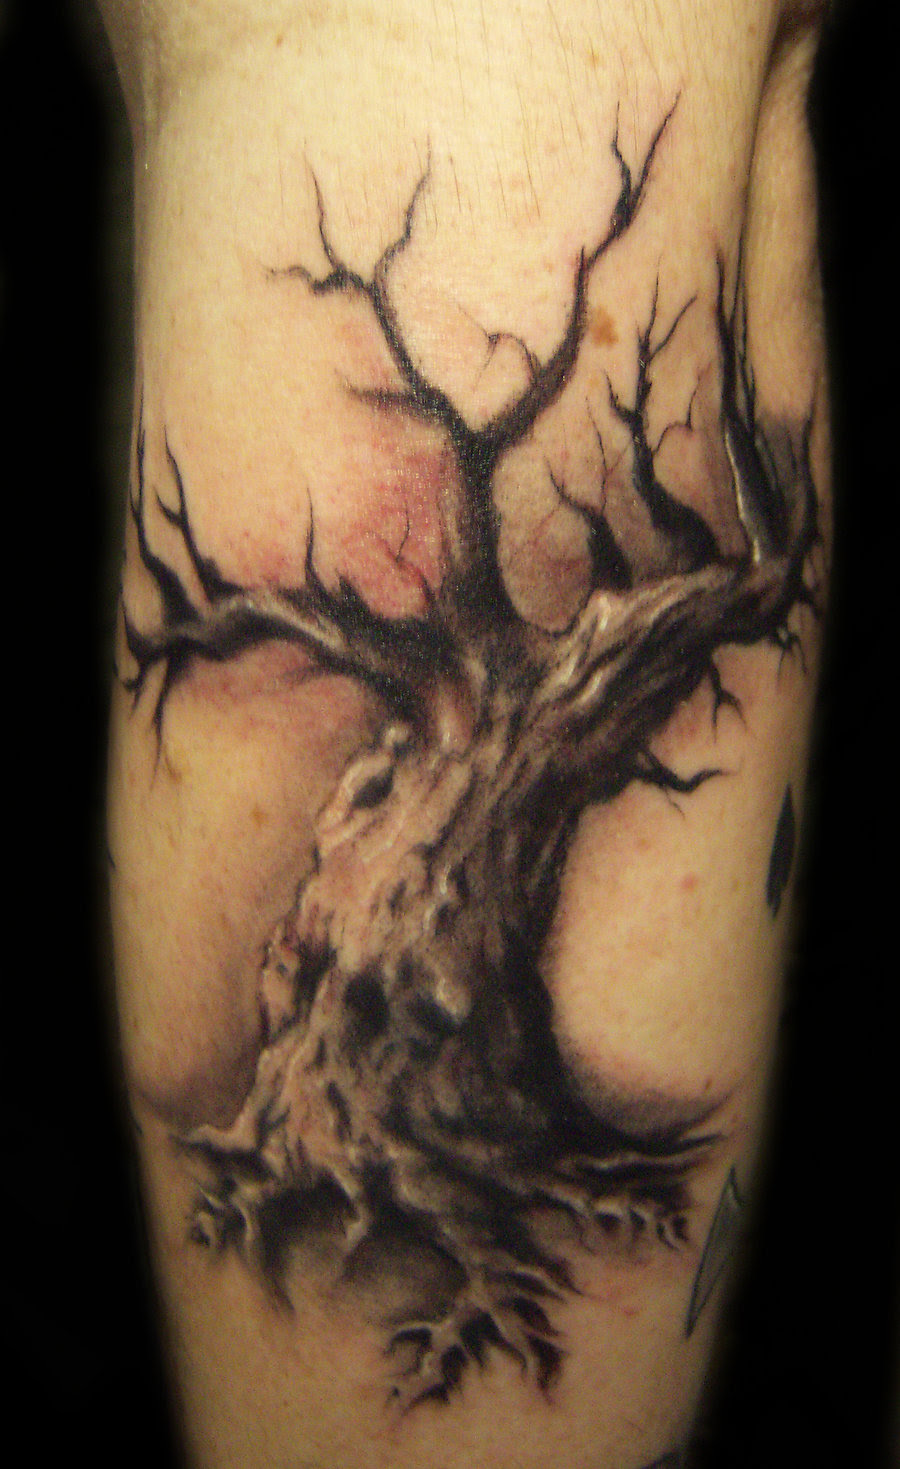 Tree Tattoo Designs Meanings Tree Tattoos Designs And Meanings 50